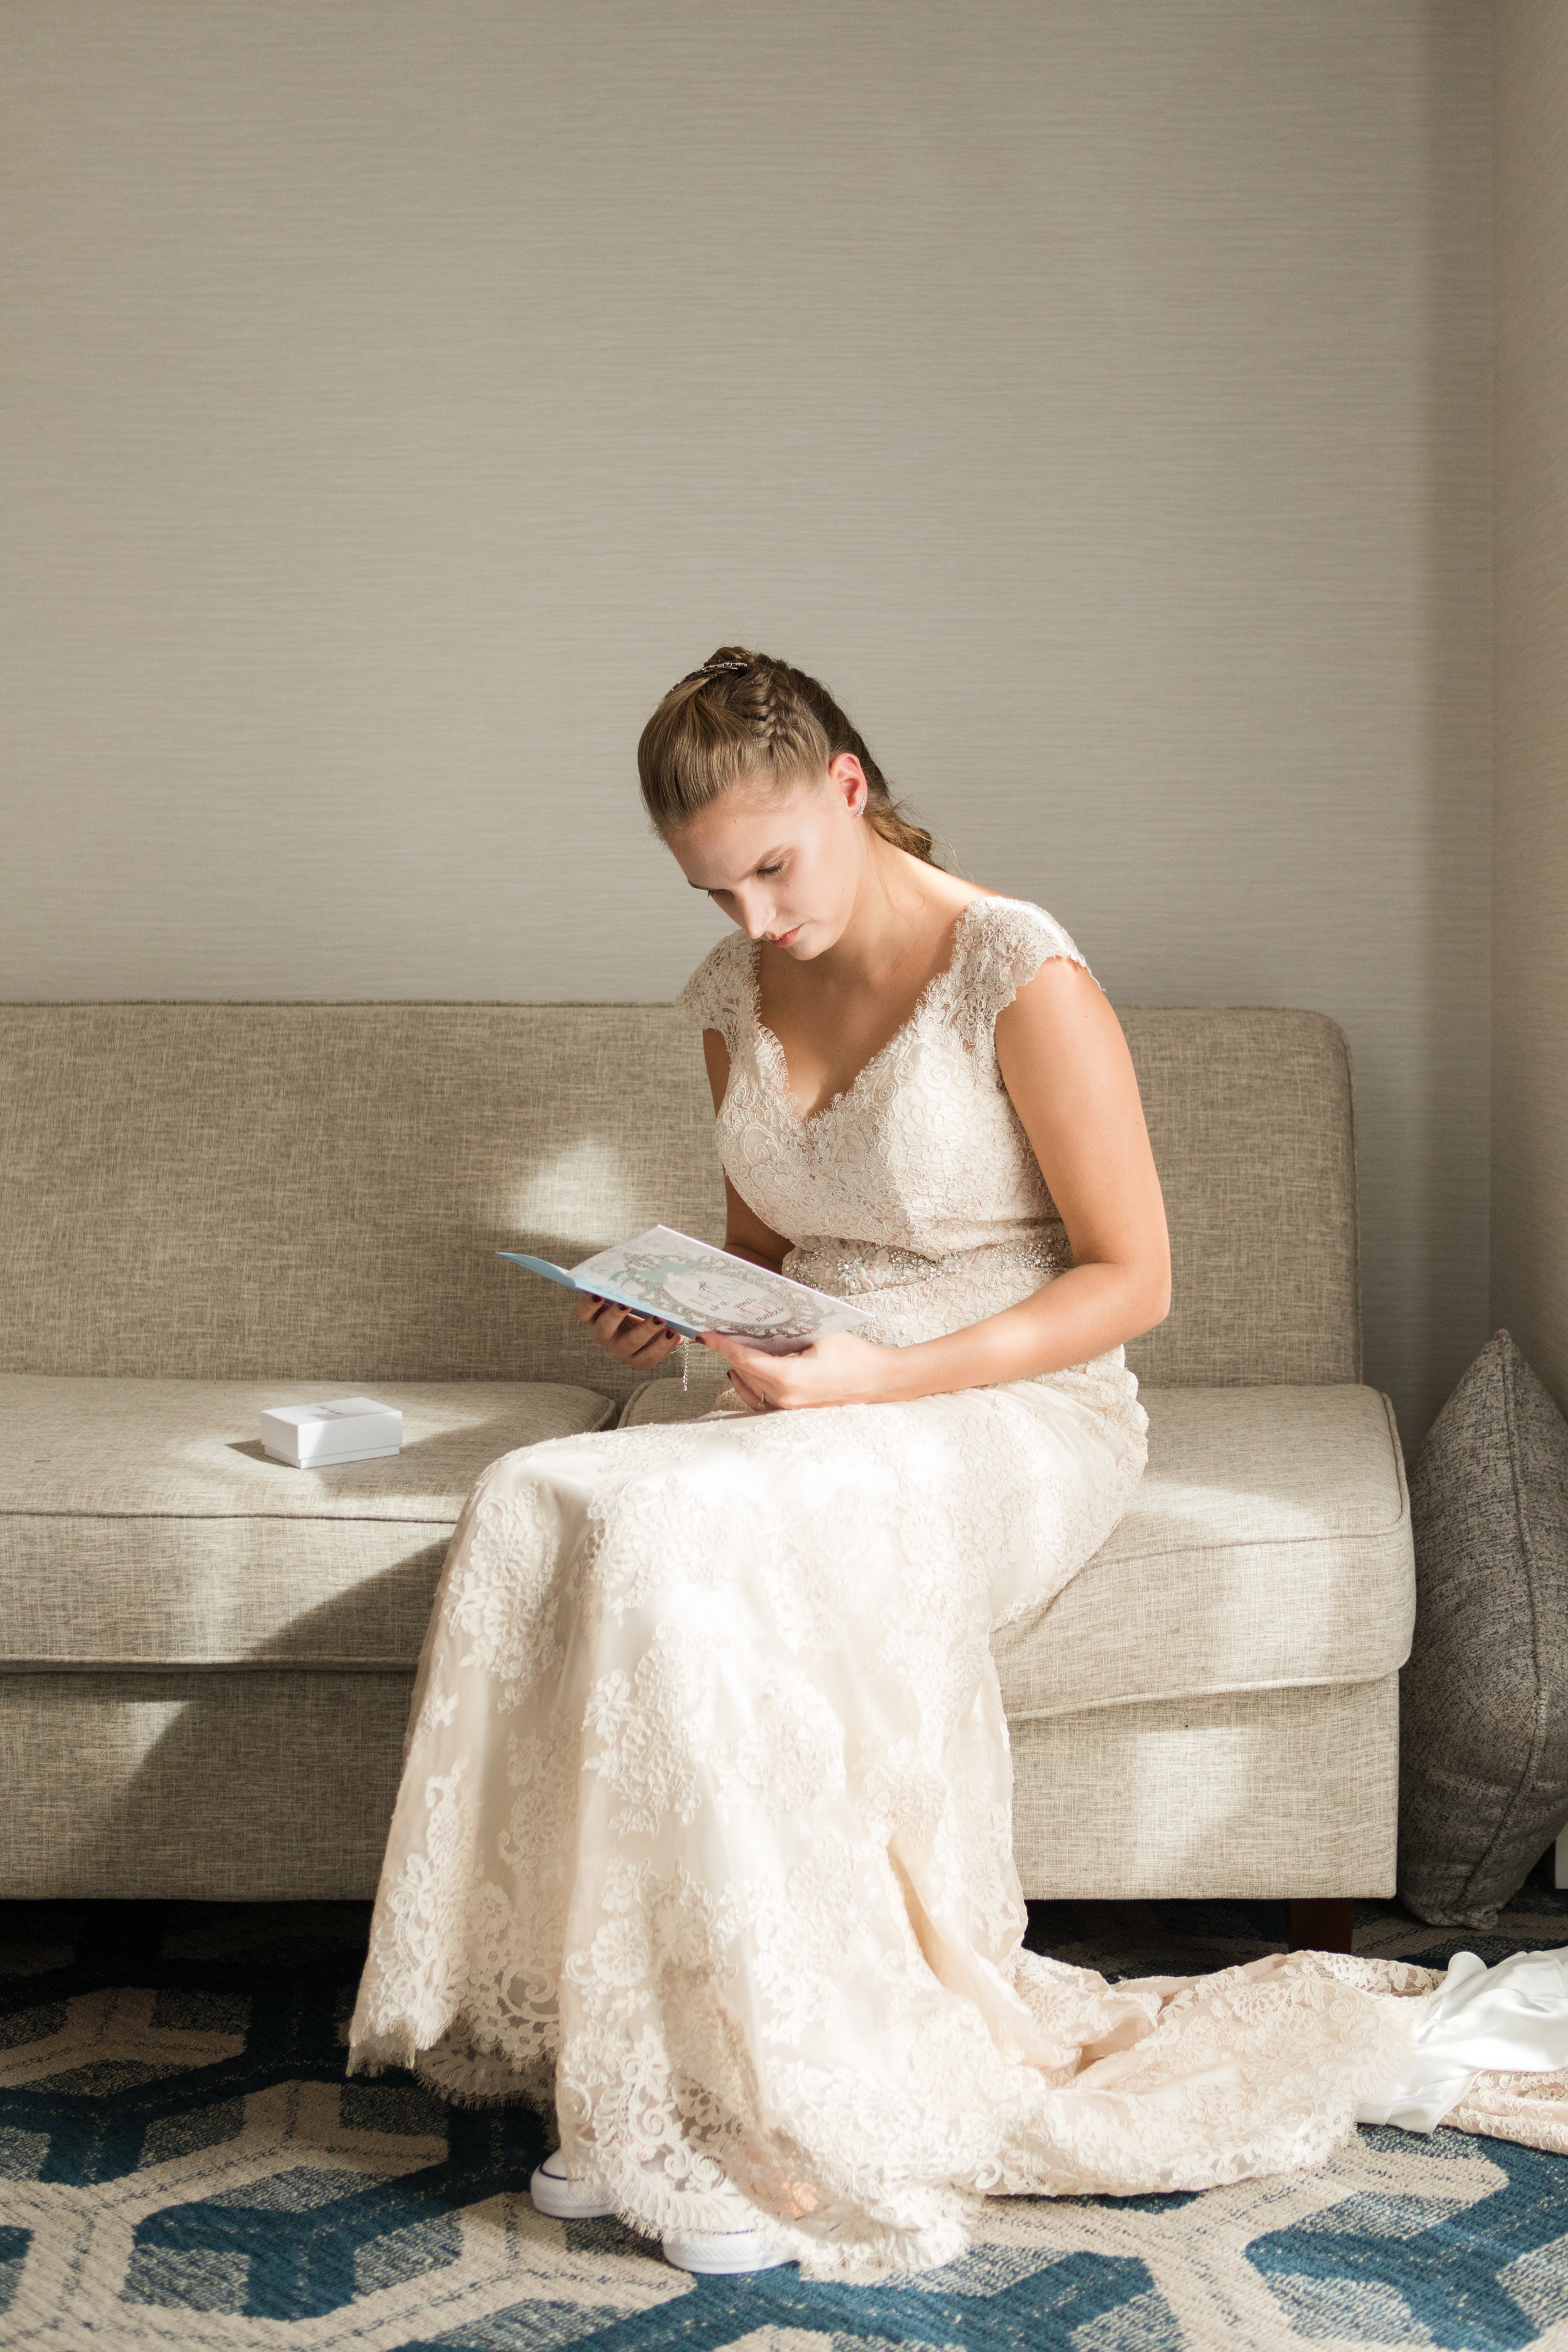 Bride in lace Allure Bridal gown reading wedding day card from groom at Sheraton Eatontown